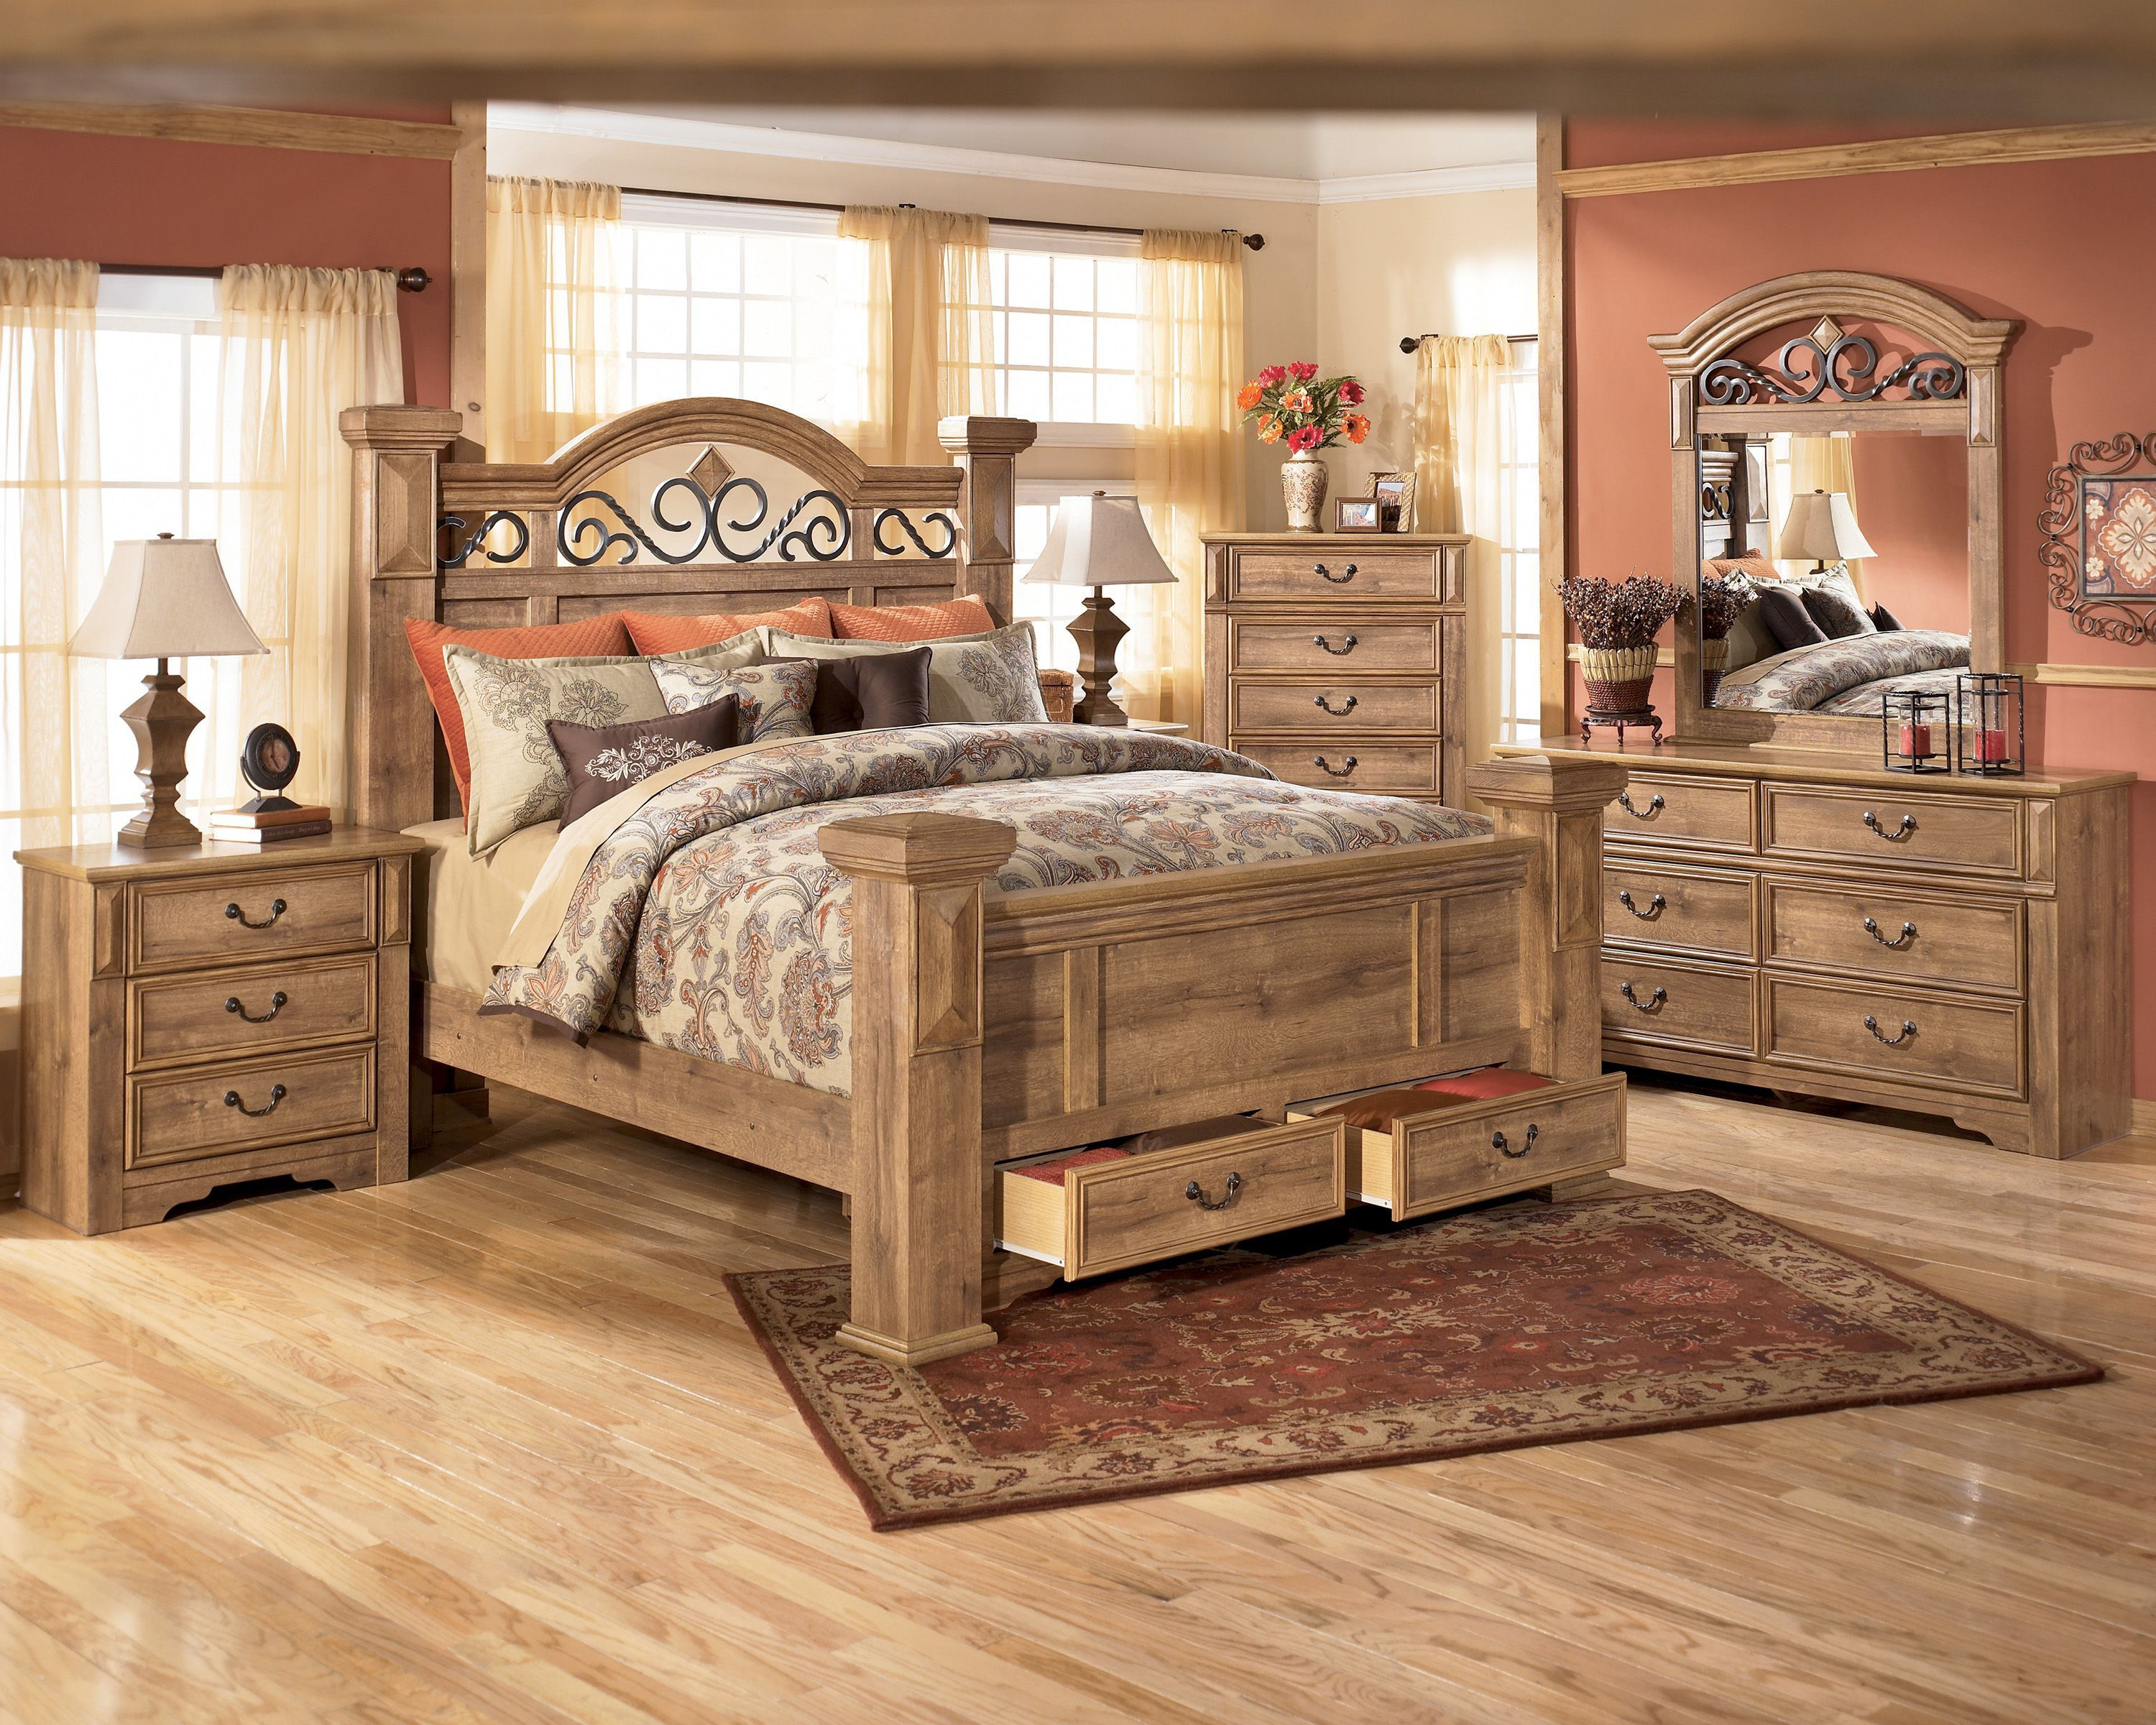 Best king size bed set rosalinda teen girl bedroom ideas